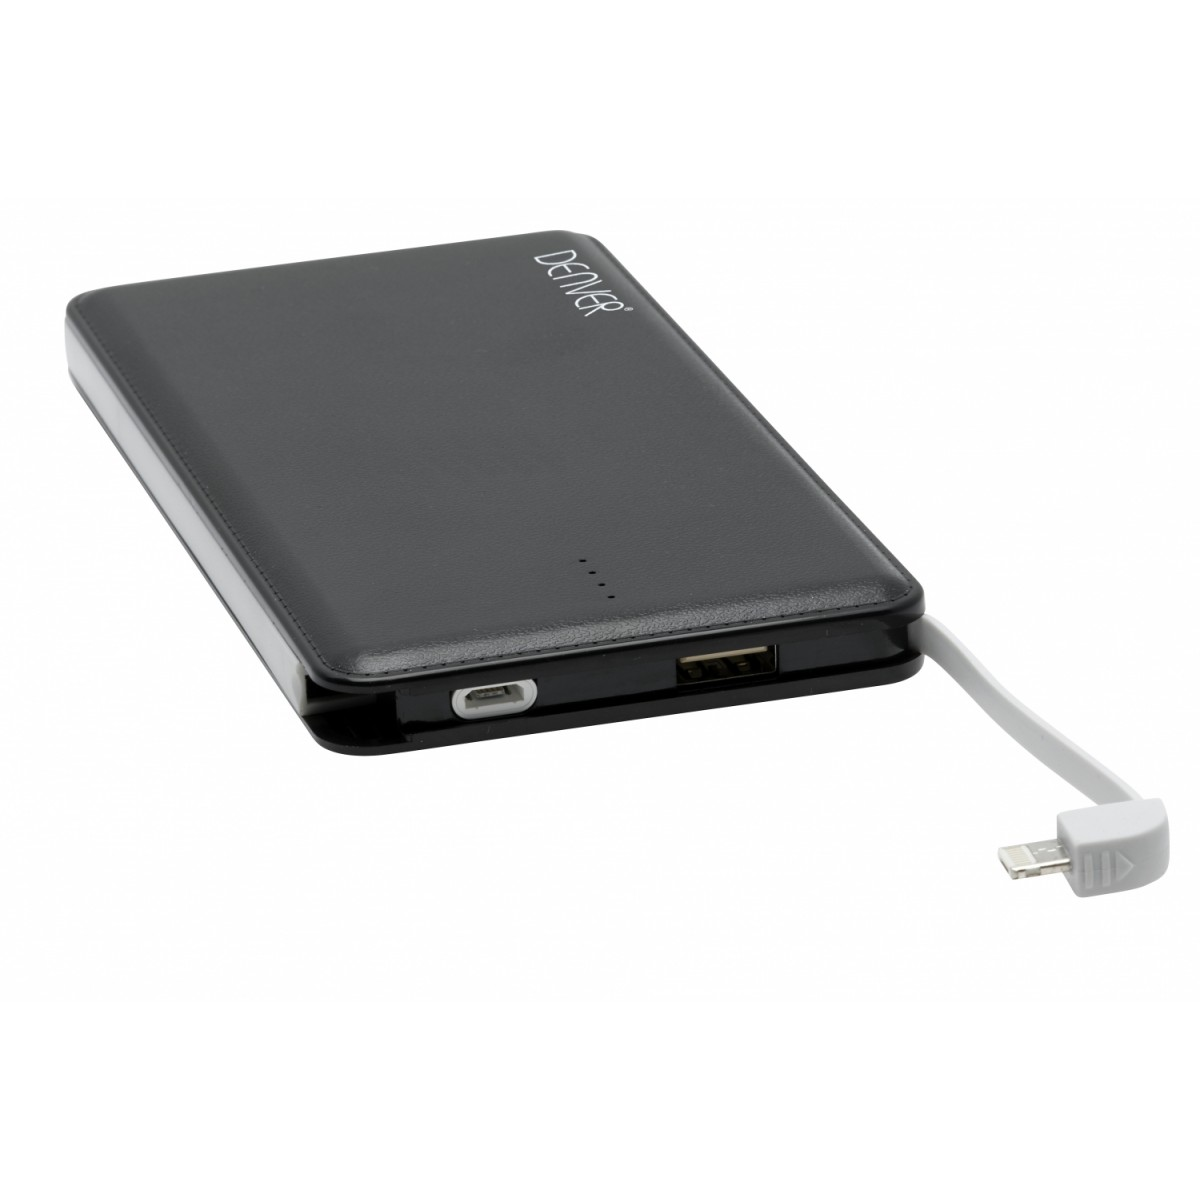 DENVER Powerbank 5000mah